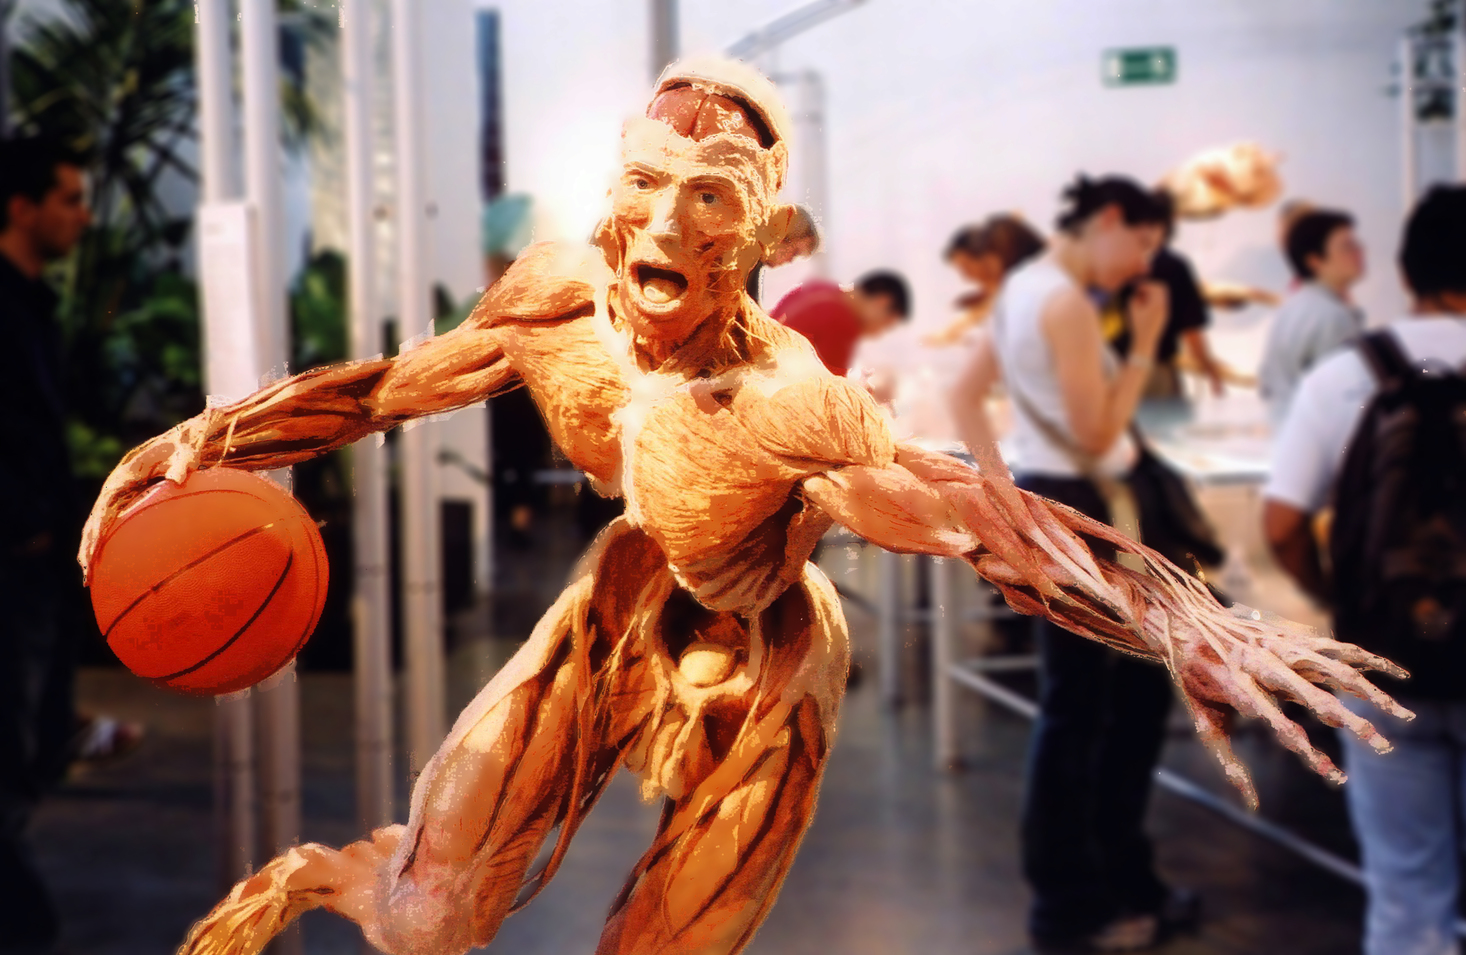 Reconsidering Body Worlds—why do we still flock to exhibits of dead ...